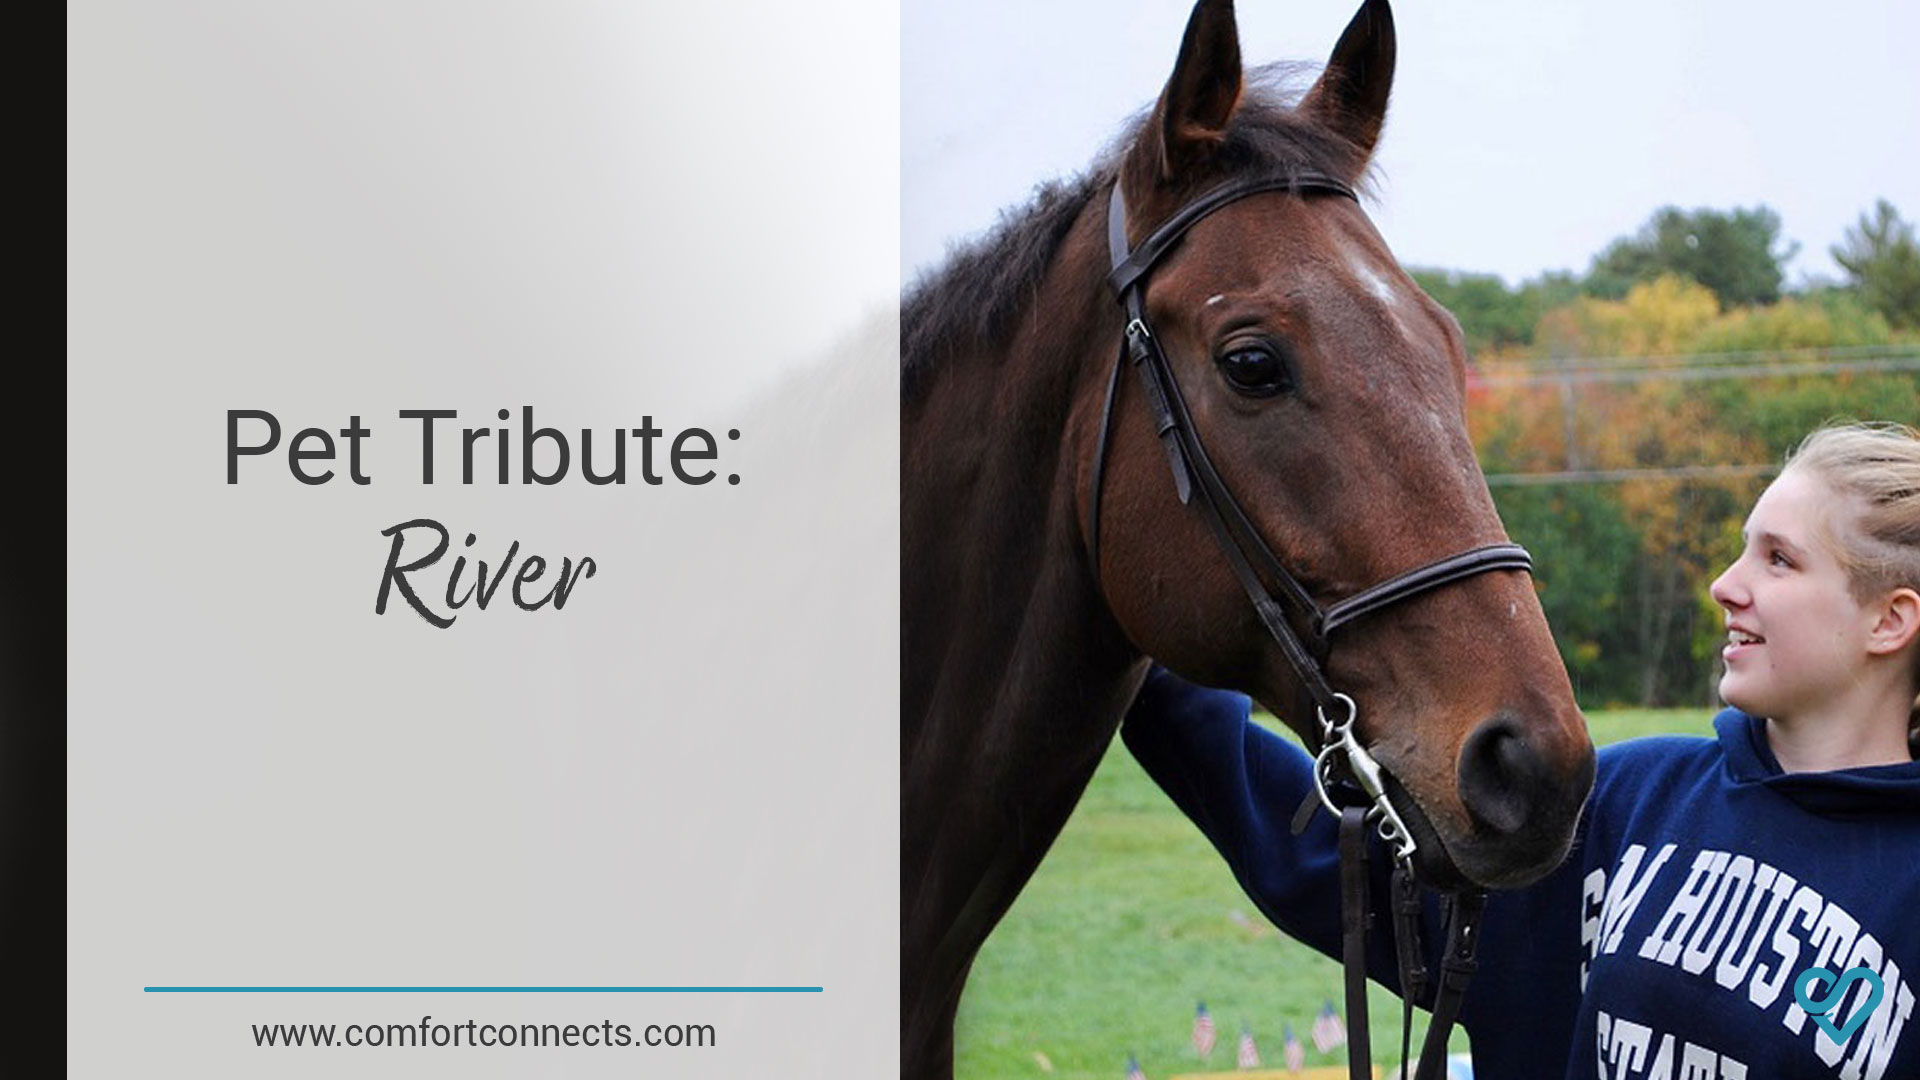 Pet Tribute: River